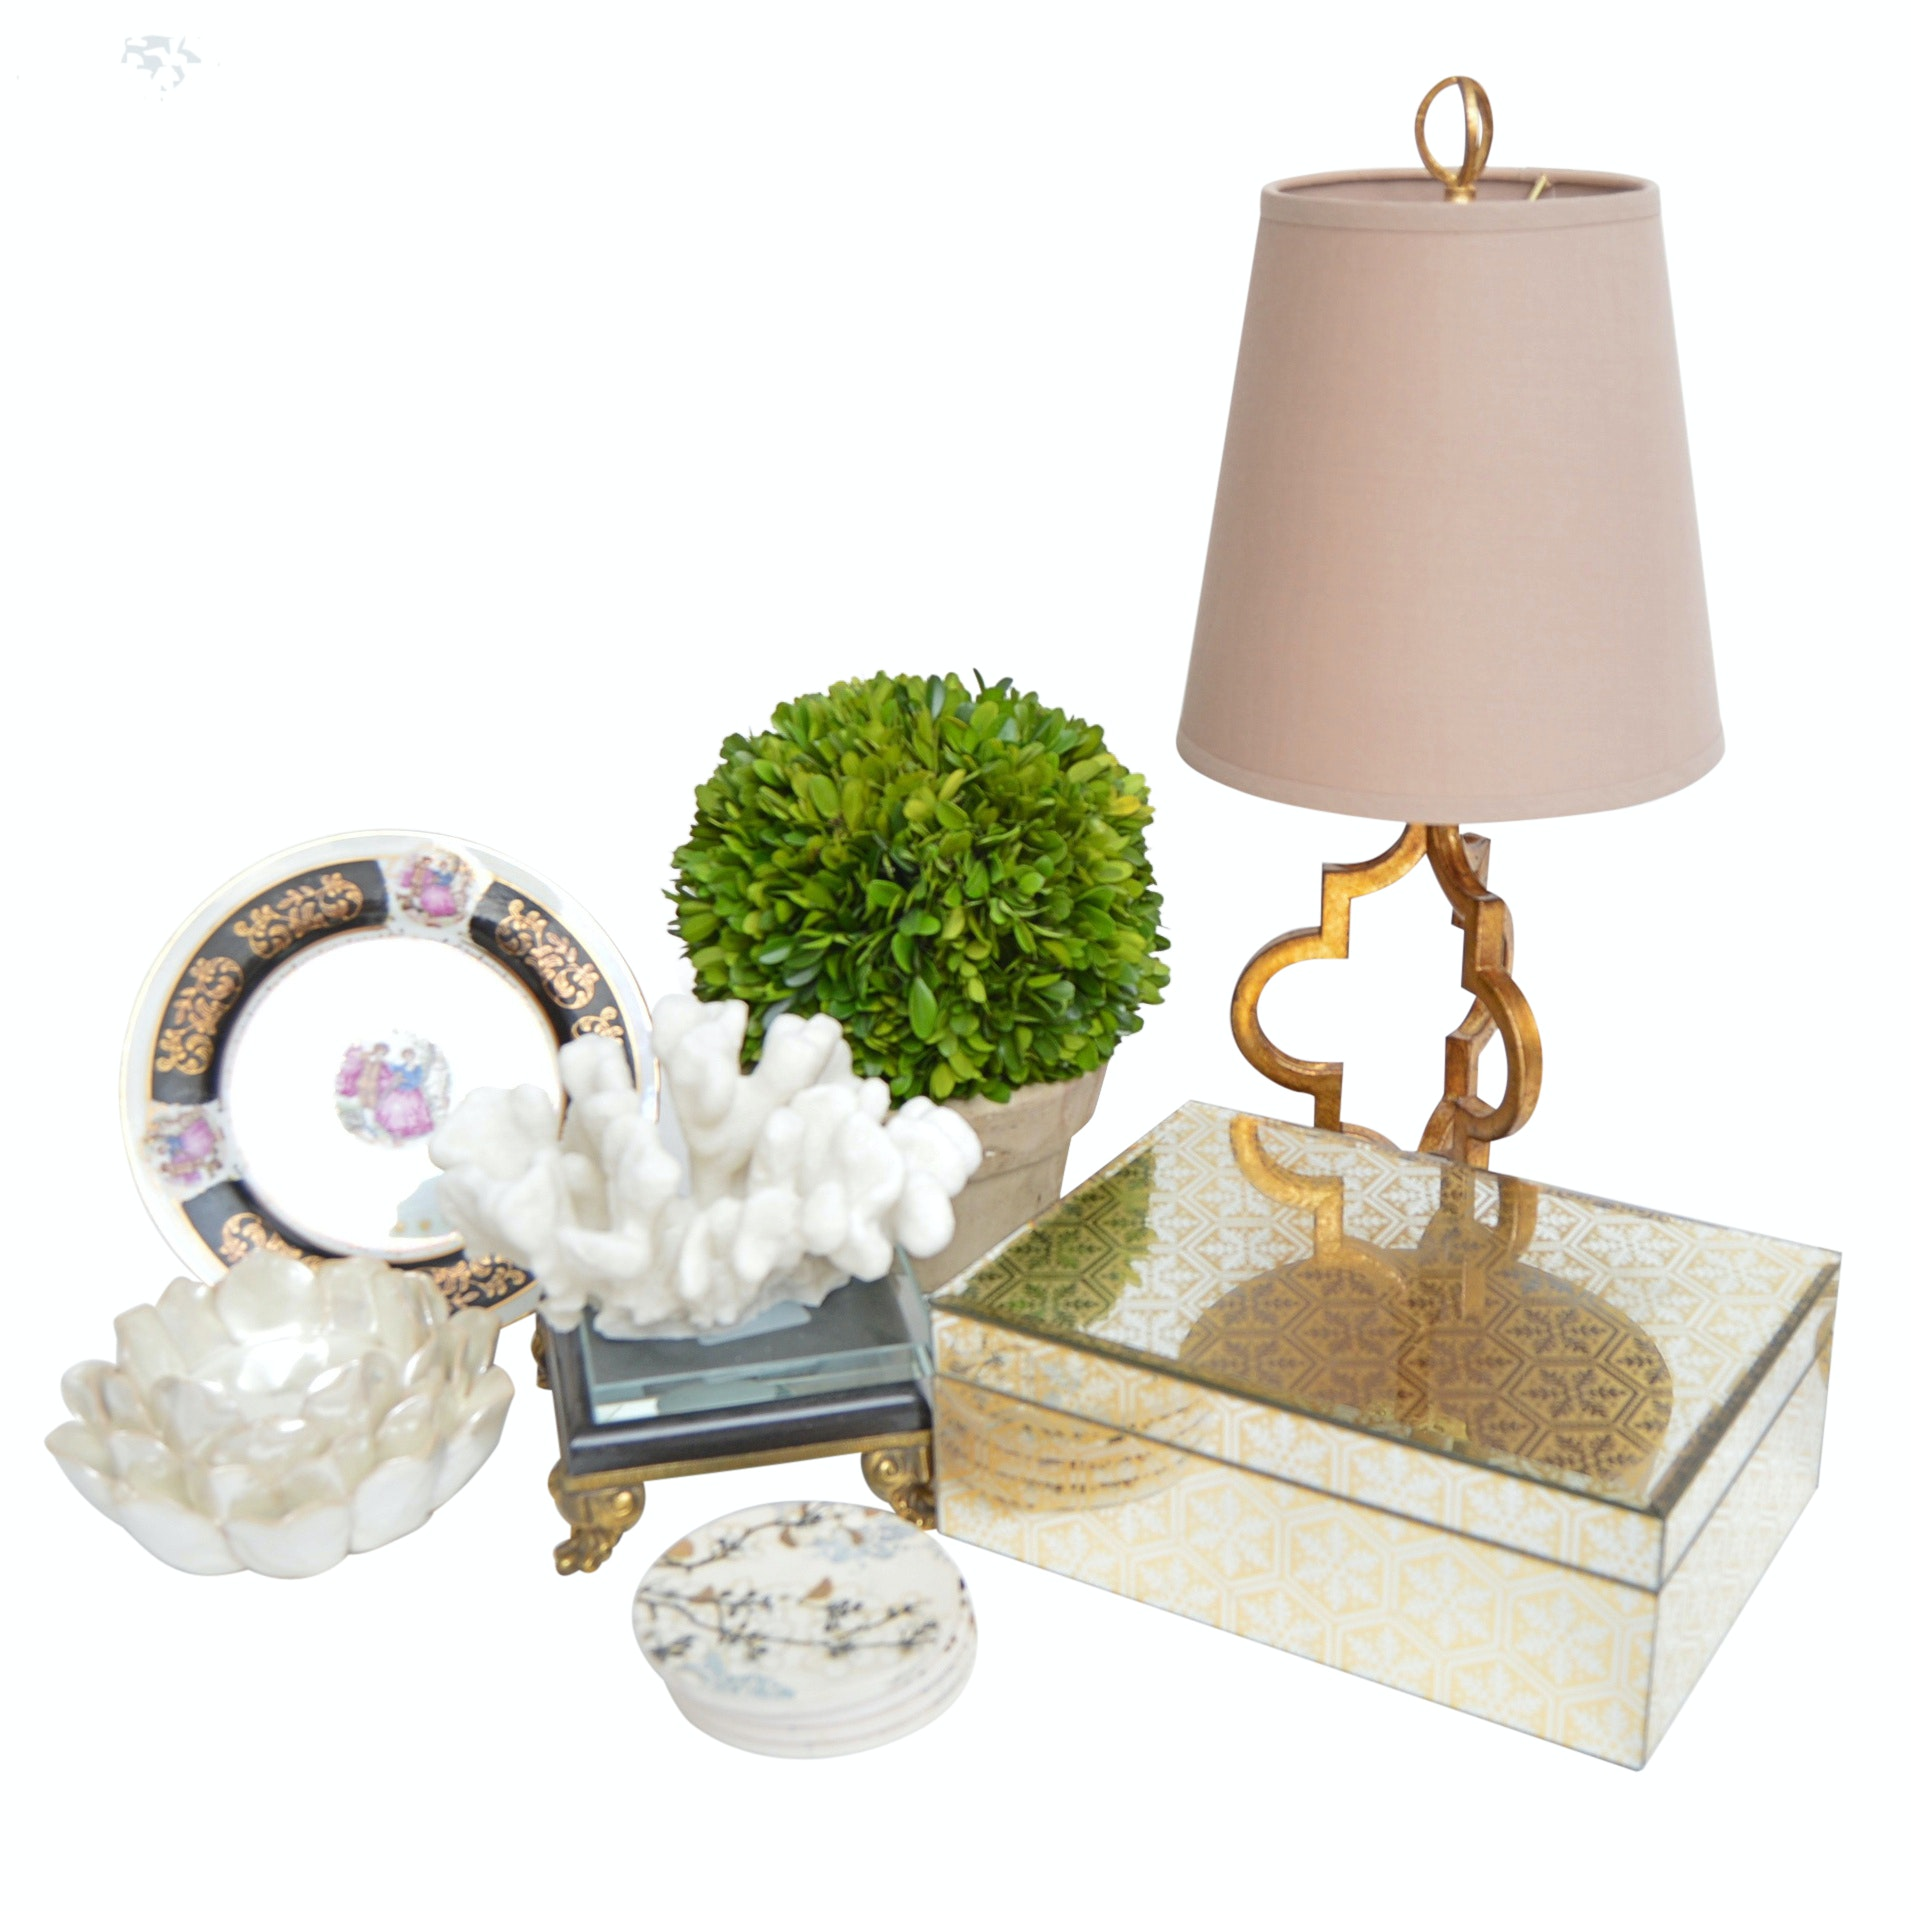 Decor with Neoclassic Style Lamp, Mirrored Trinket Box